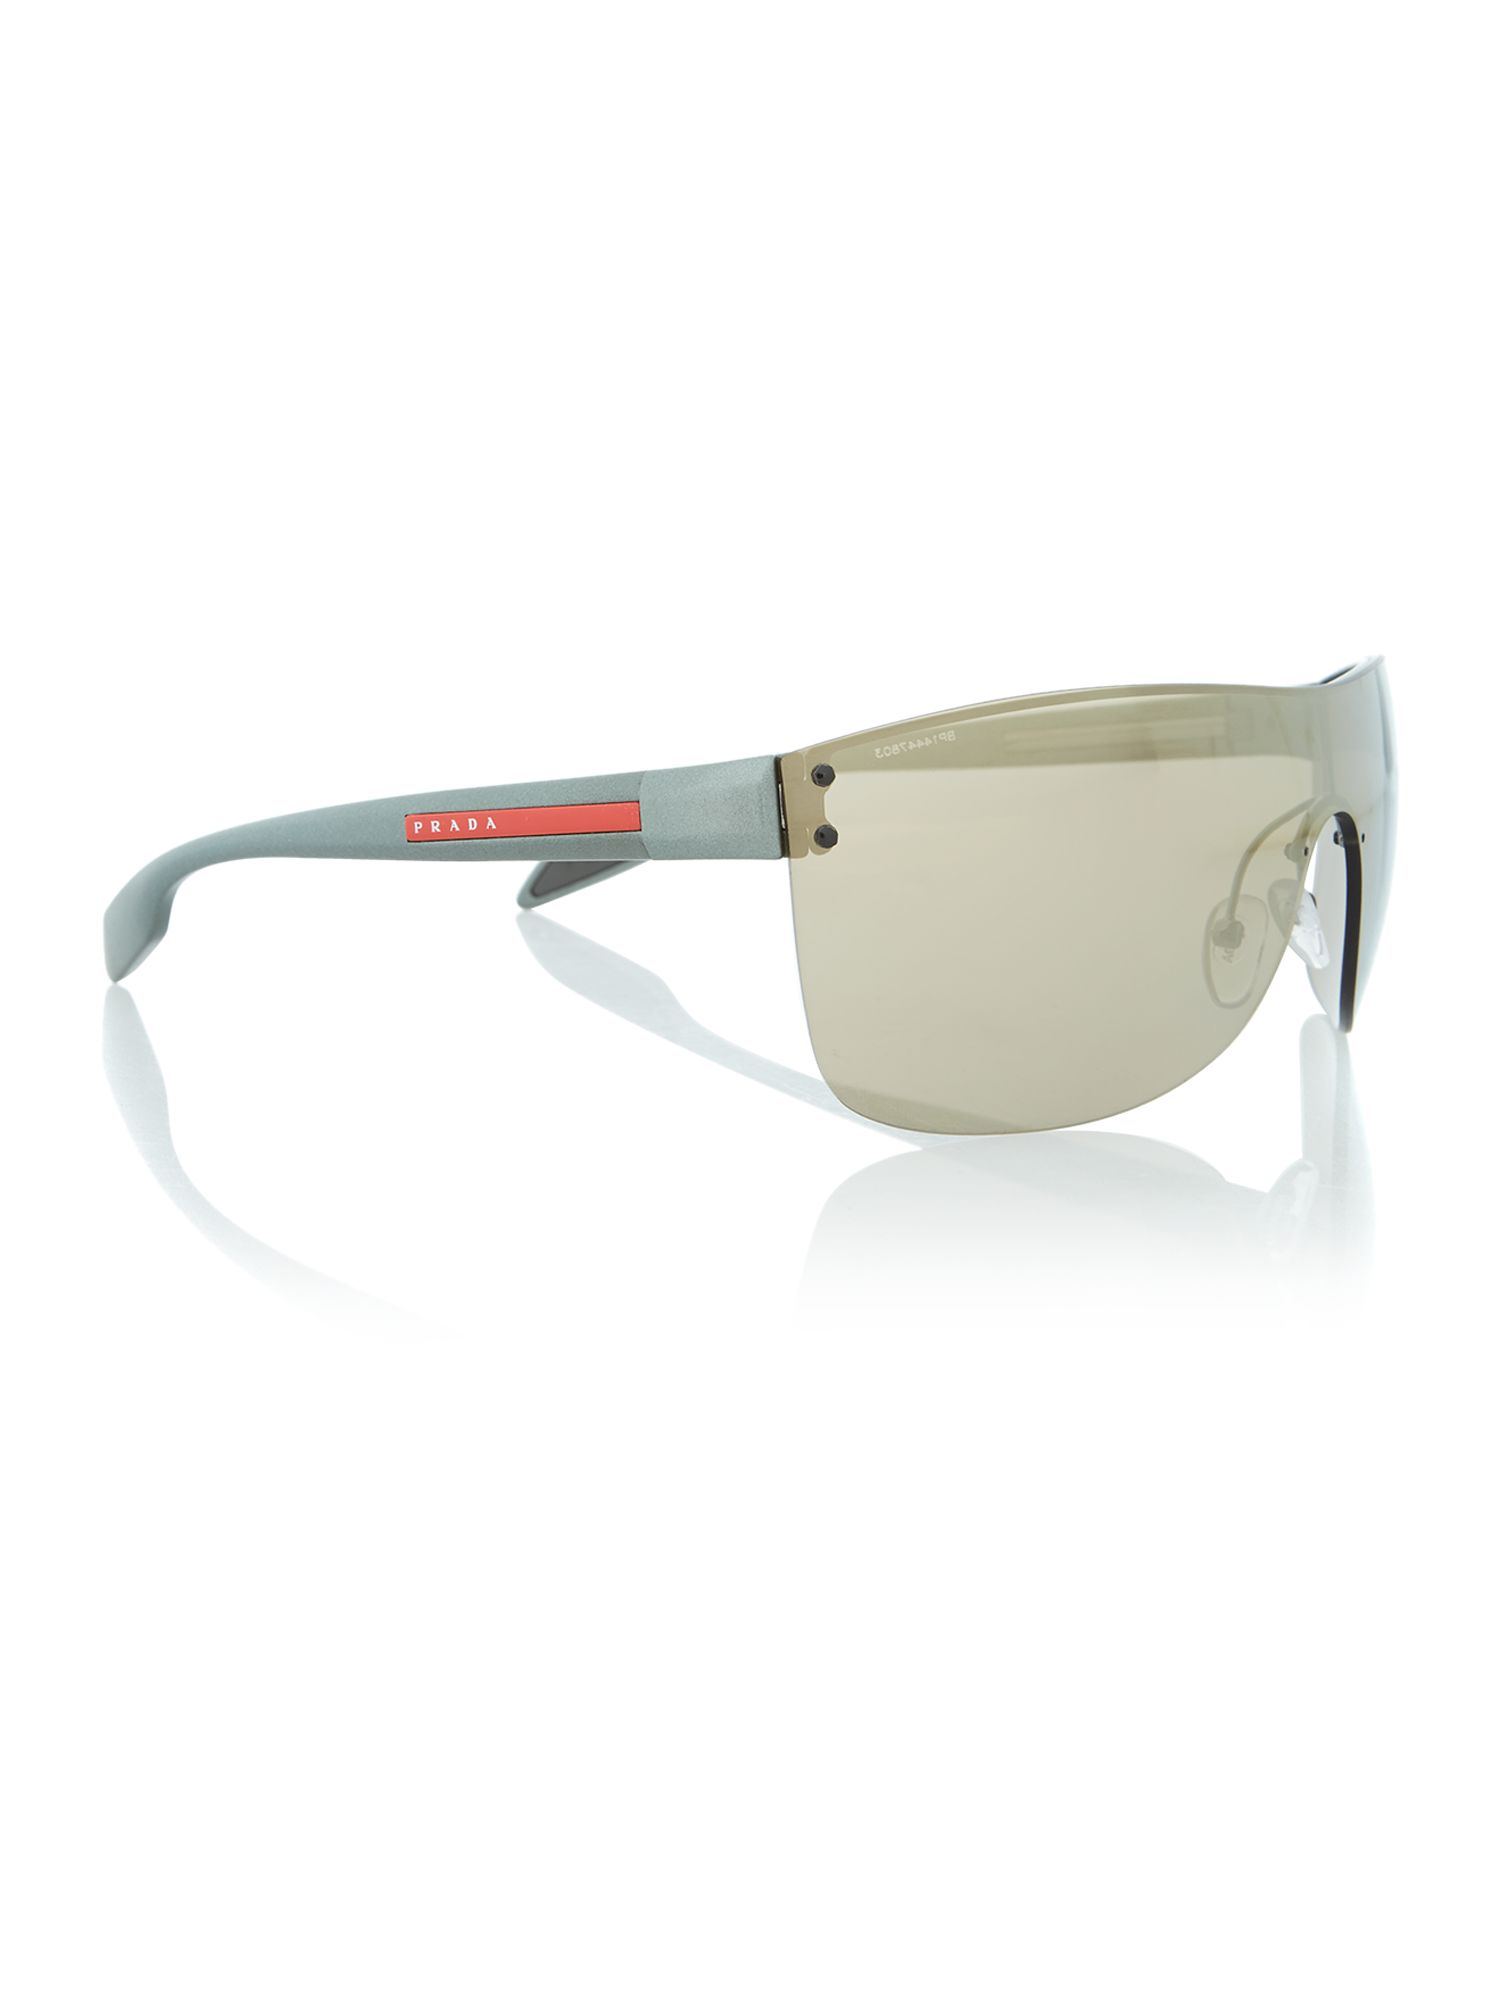 Gunmetal square sunglasses